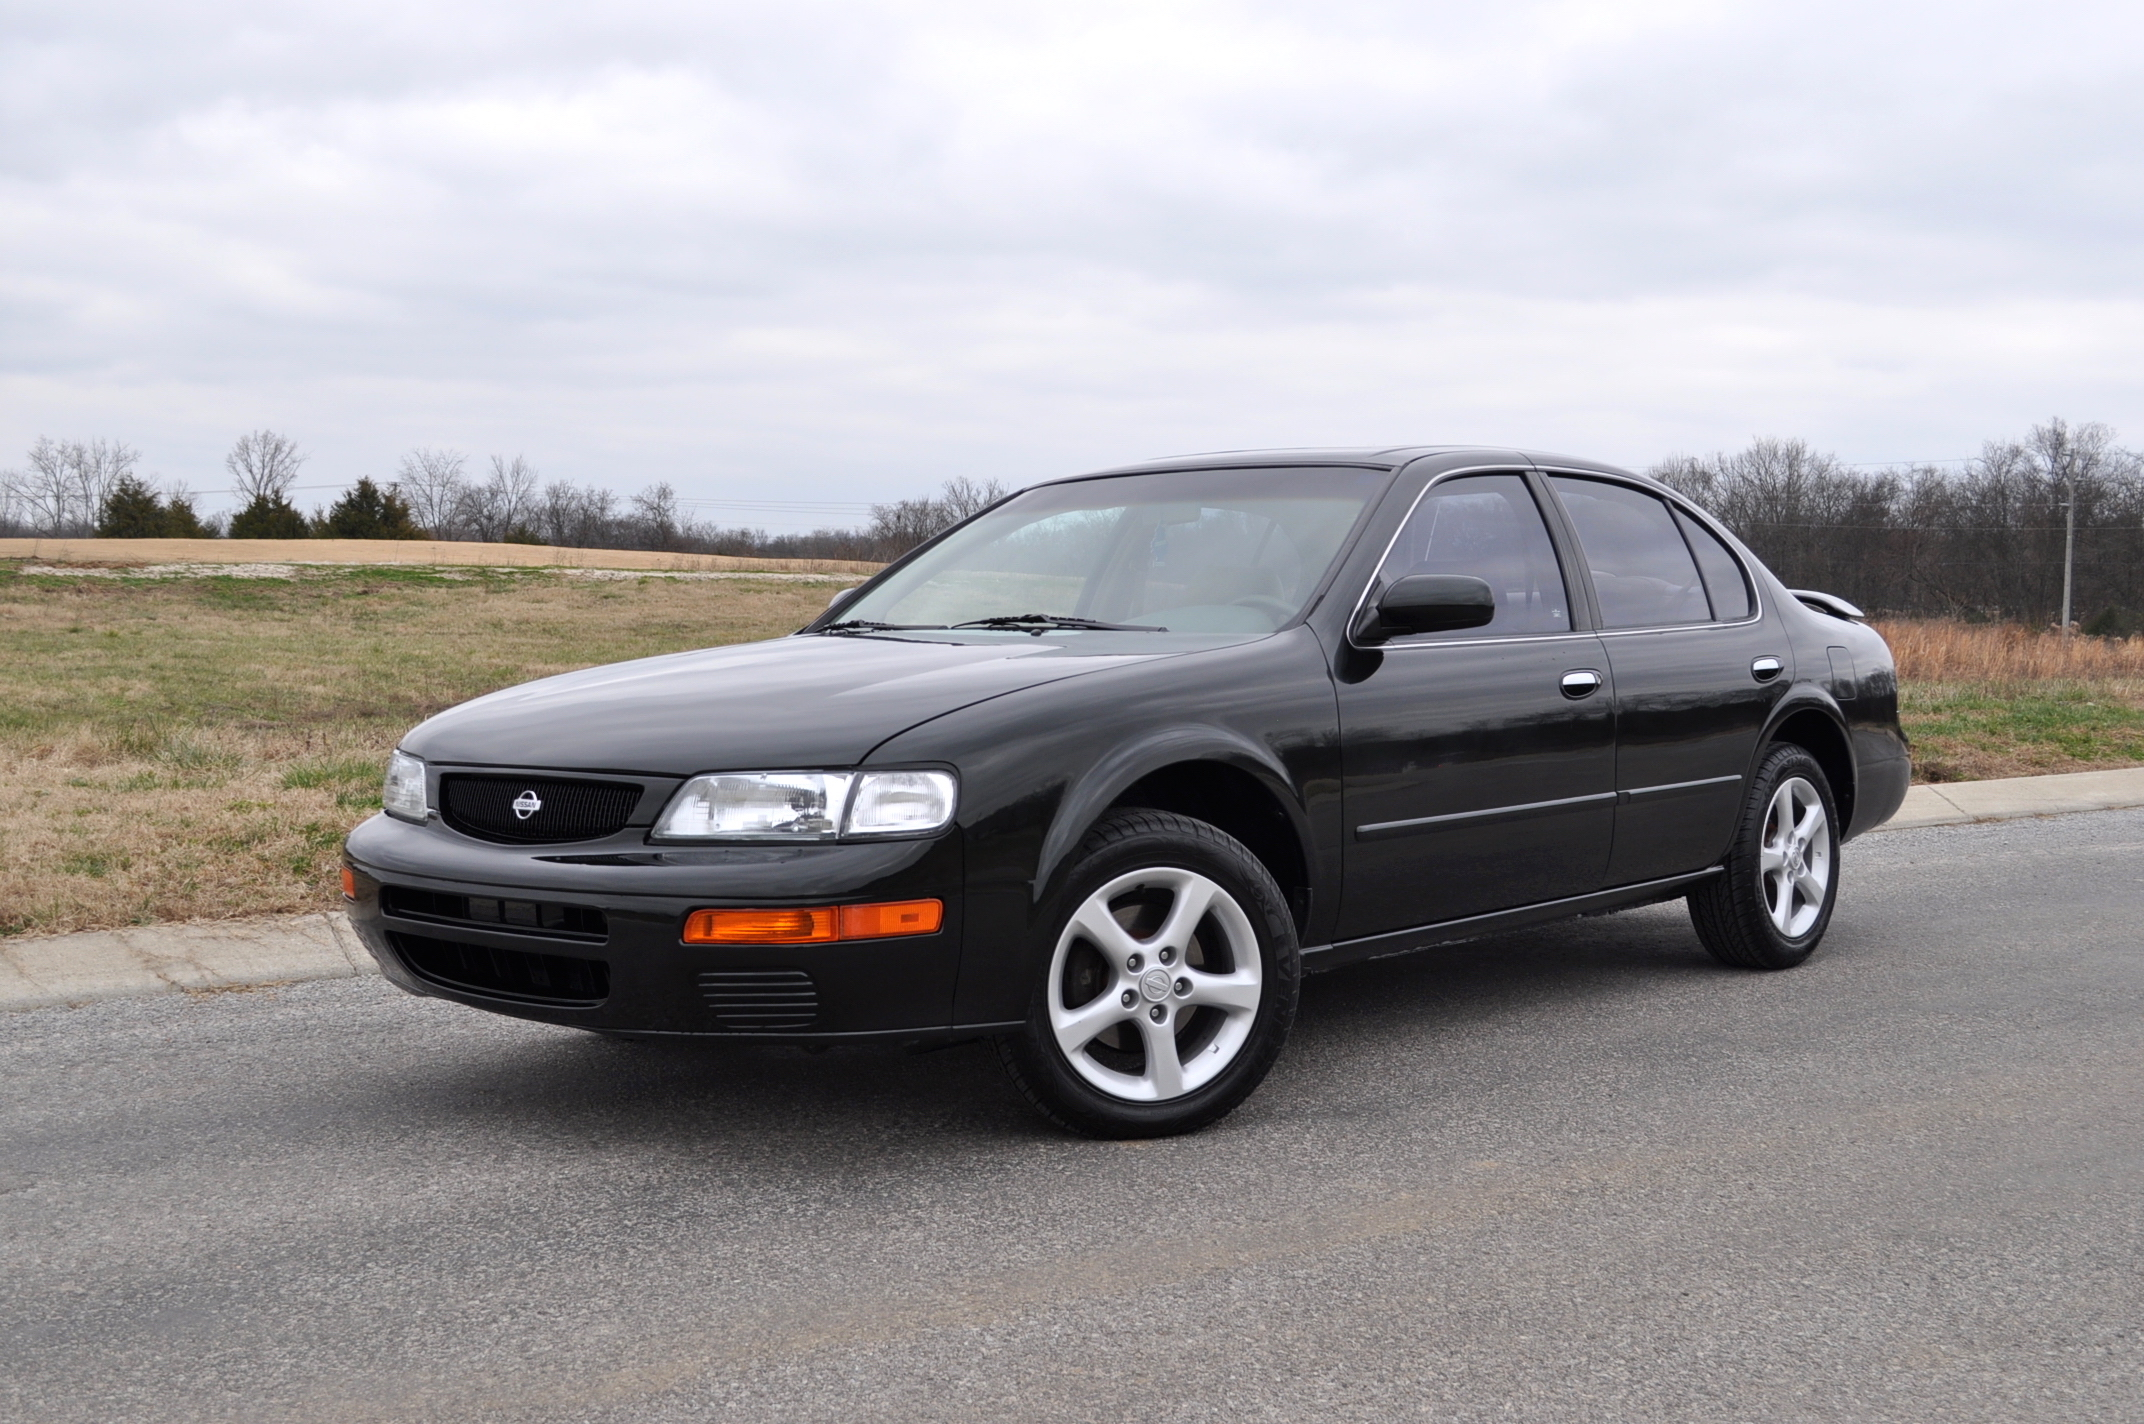 Nissan restored luke akers 1996 nissan maxima then we drove it